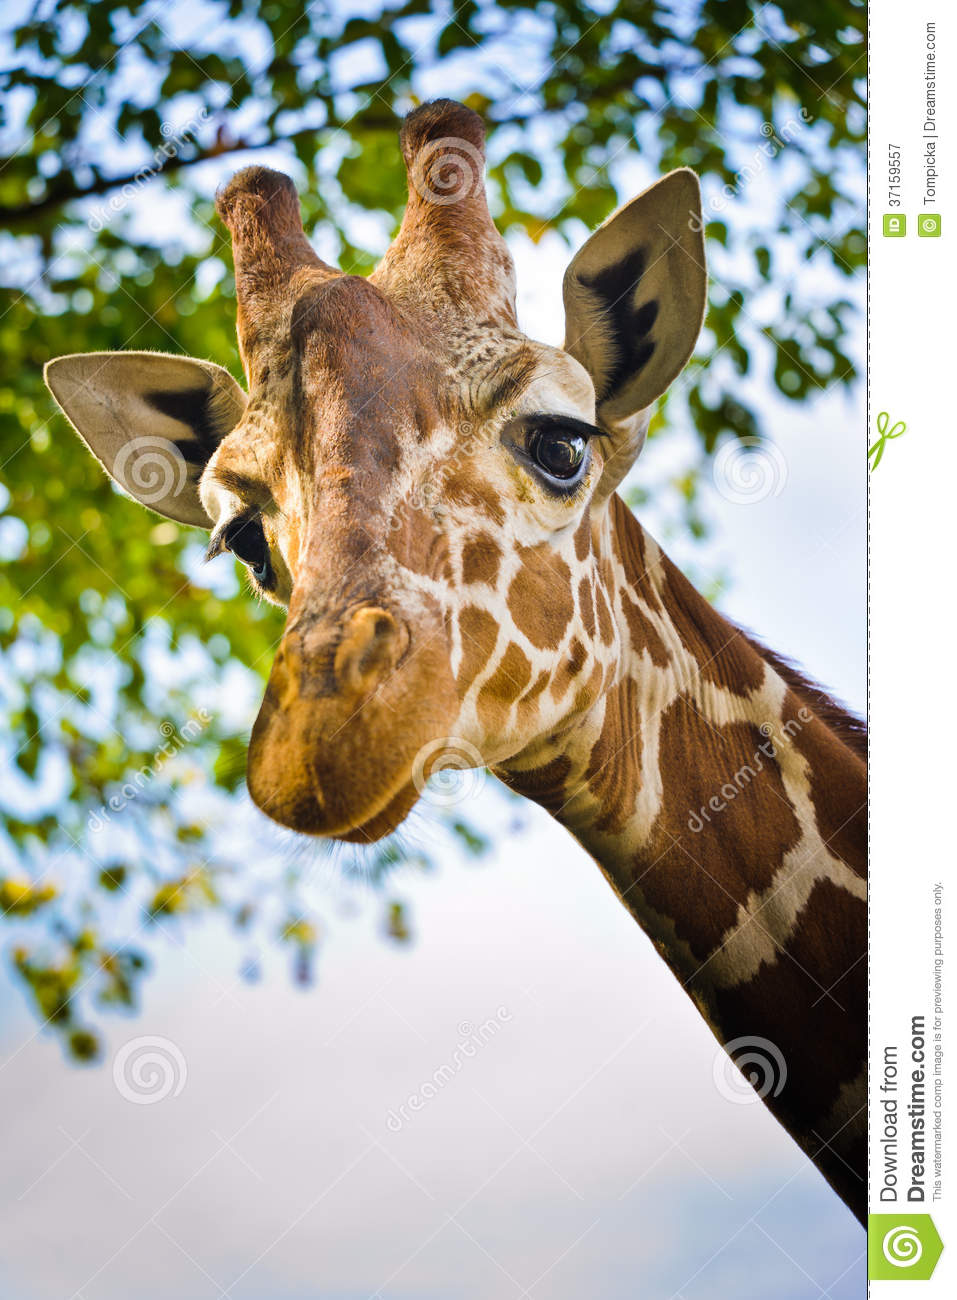 Giraffe head close up - photo#26